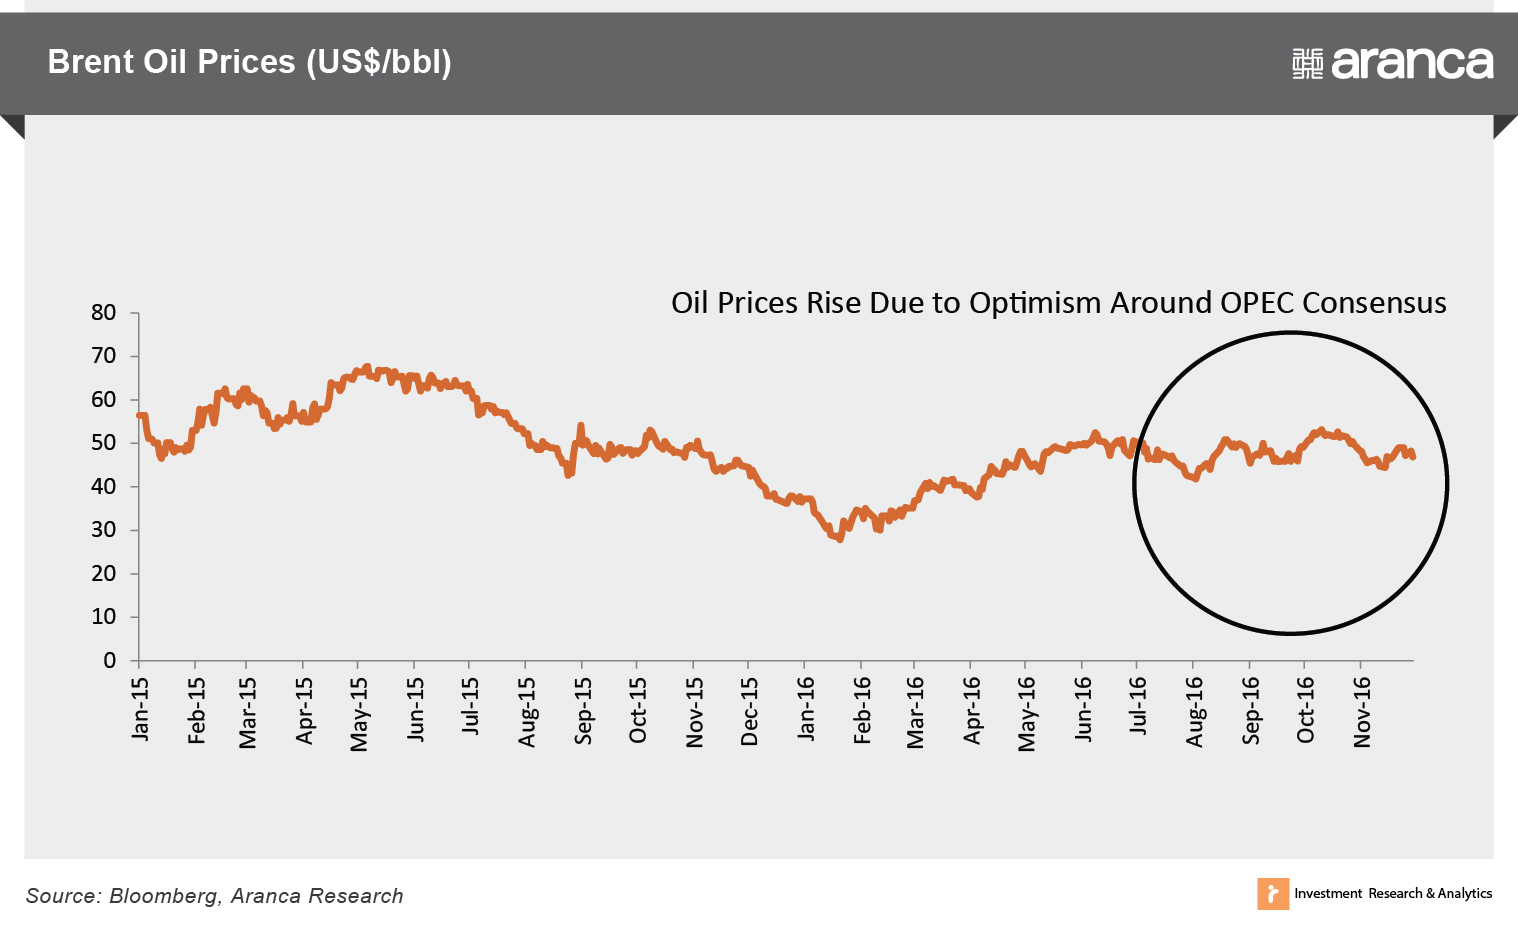 Brent Oil Prices (US$/bbl)